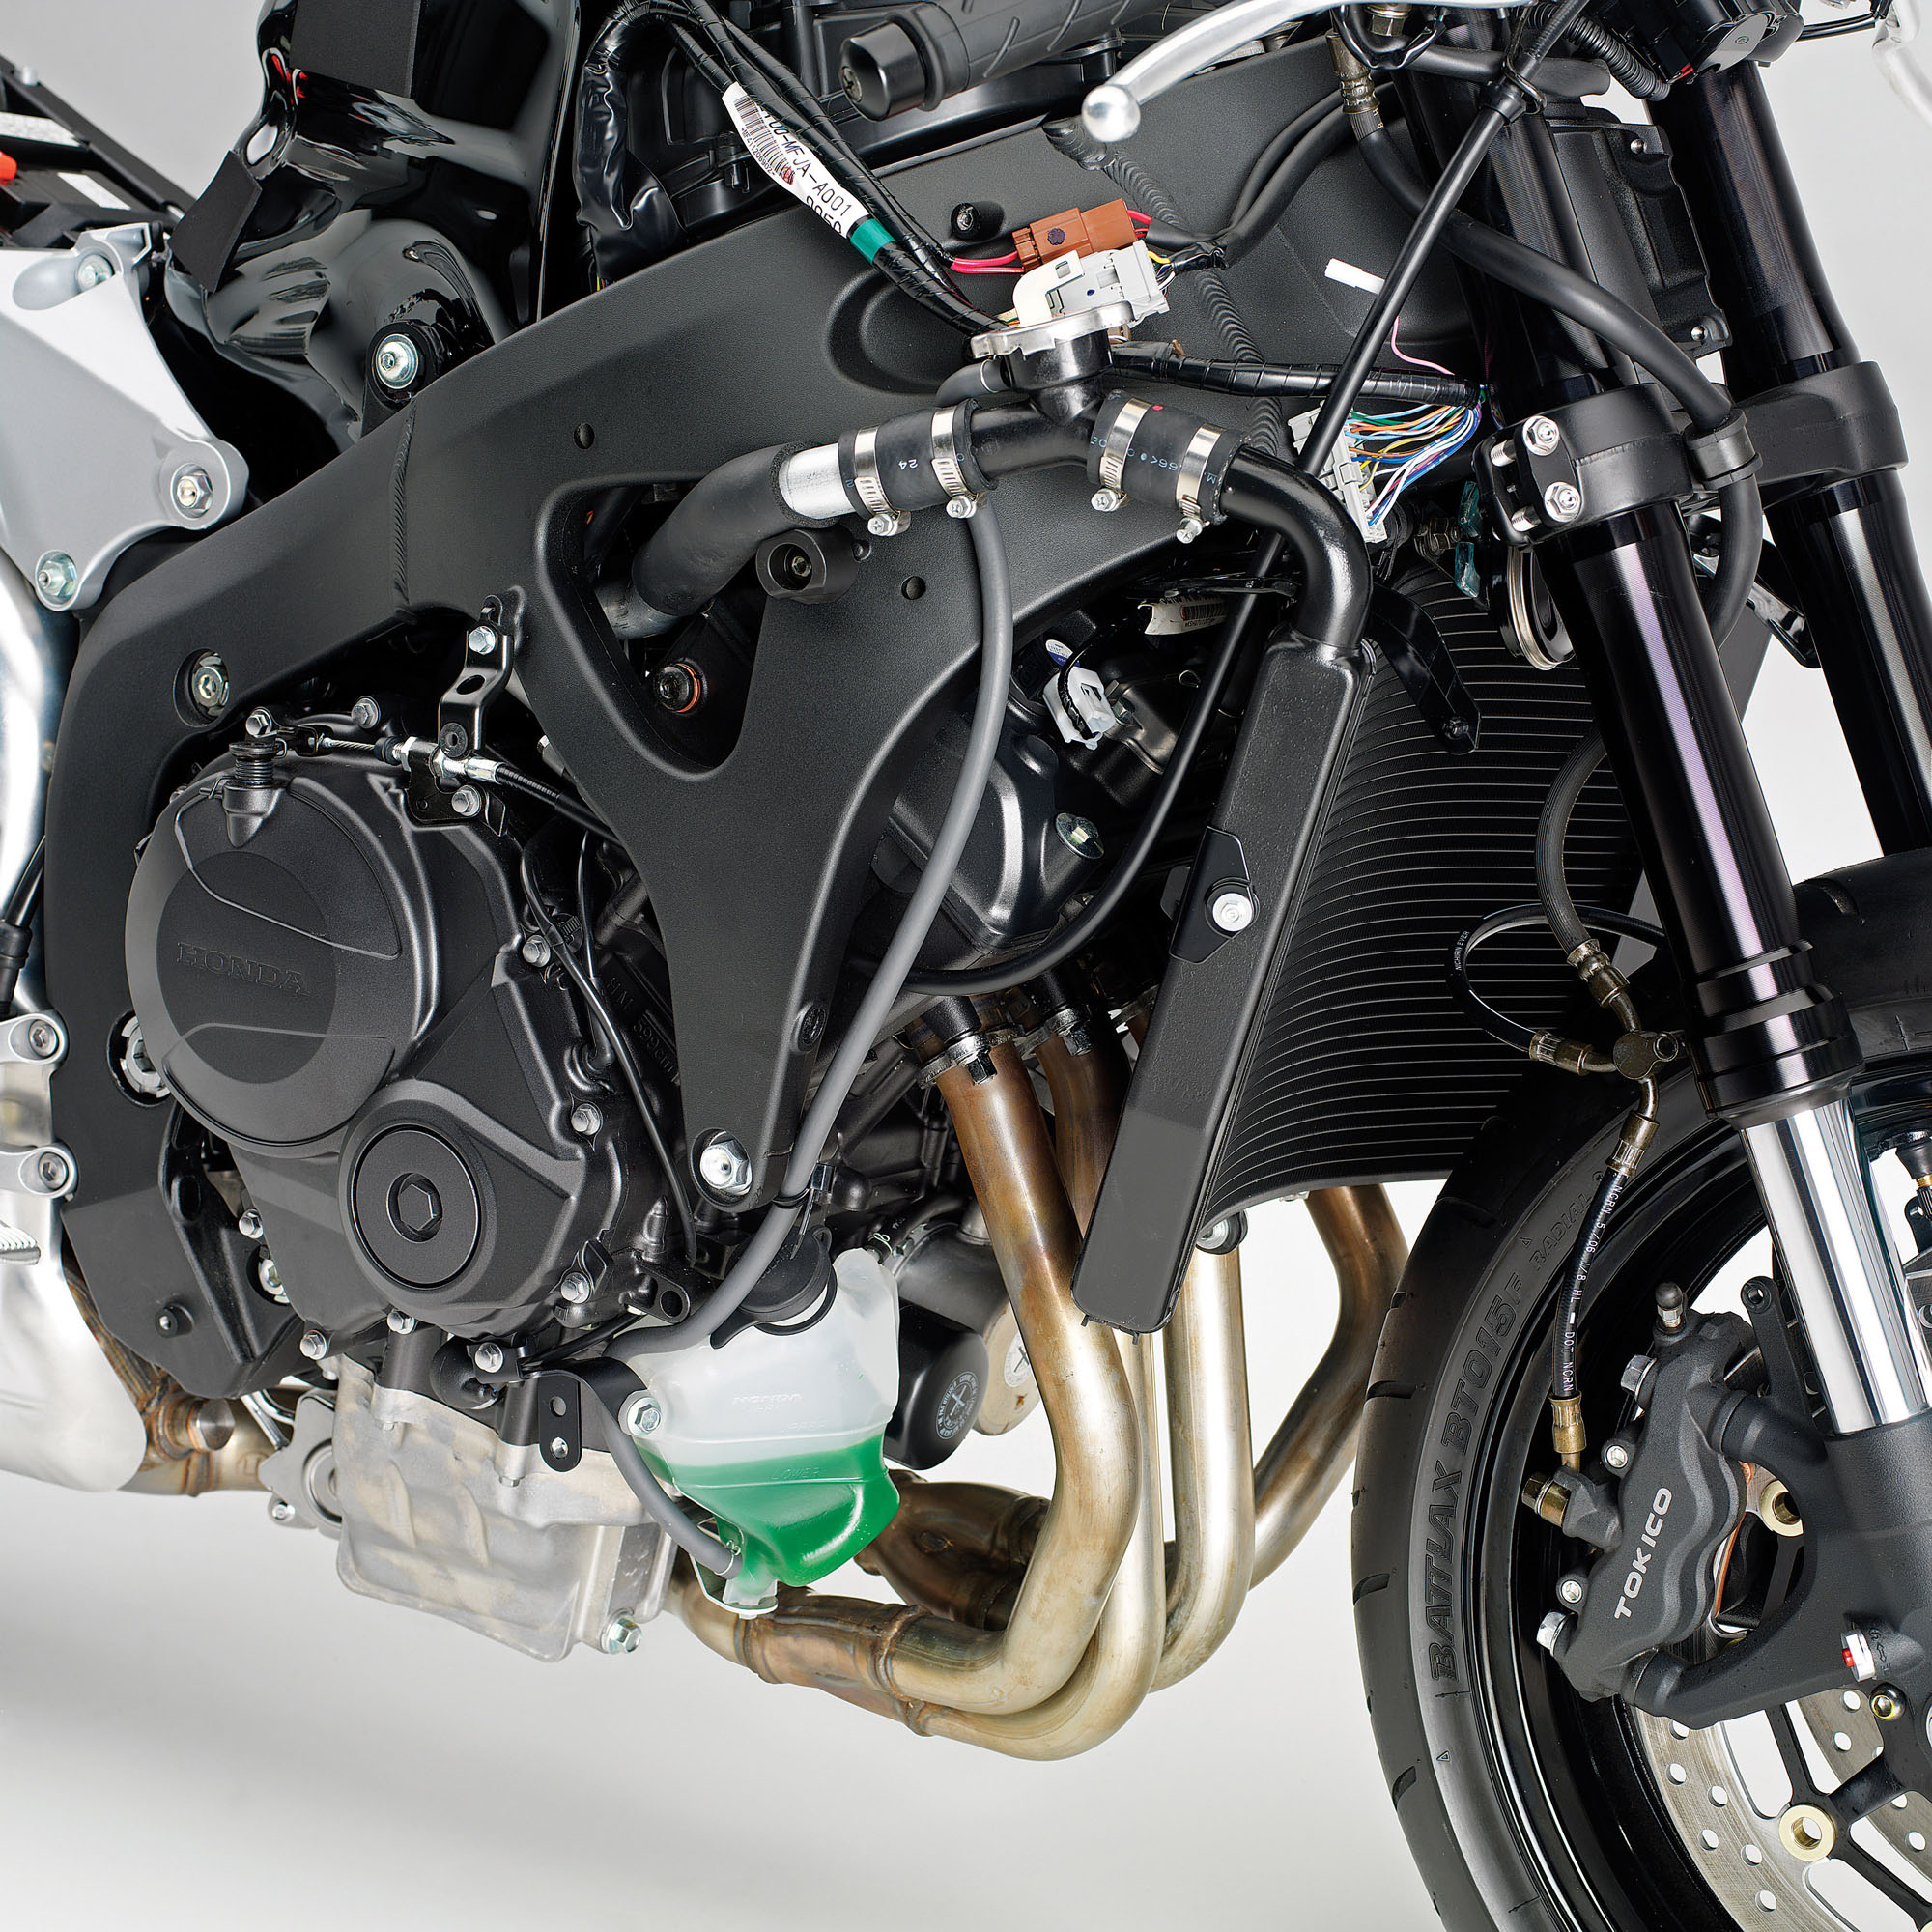 2017 Honda Cbr600rr Review Specs 600cc Cbr Supersport Bike 2005 600 Rr Color Wiring Diagram Technical Specifications